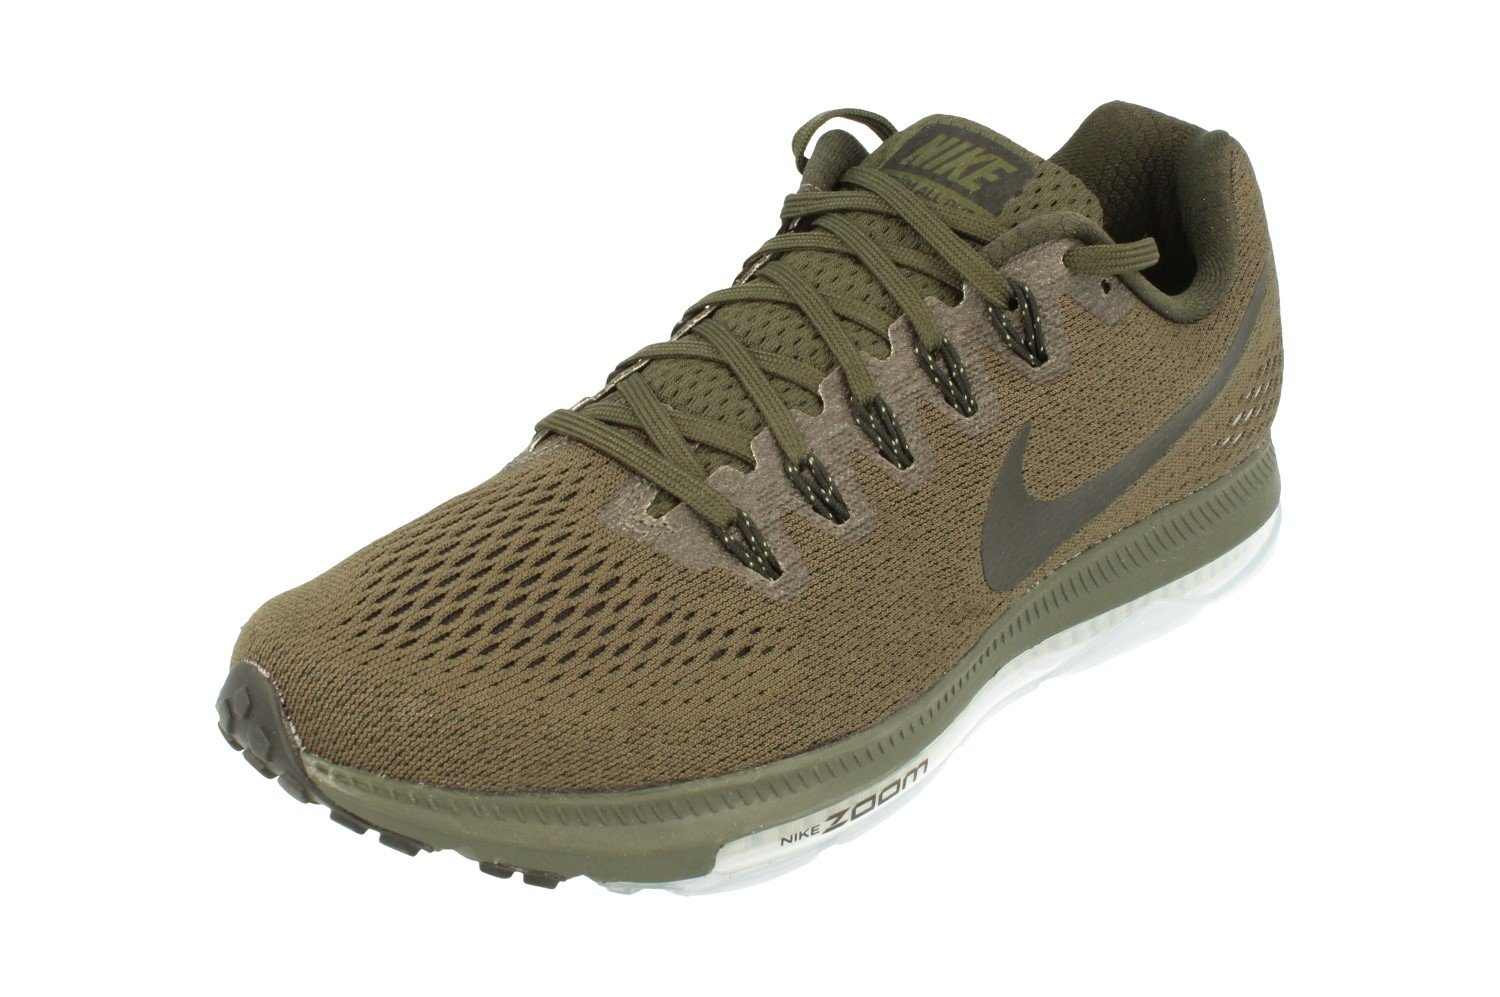 NIKE Zoom All Out Low Men's Running Sneaker B00PMPNKT6 8.5 D(M) US|Sequoia Black Palm Green 301